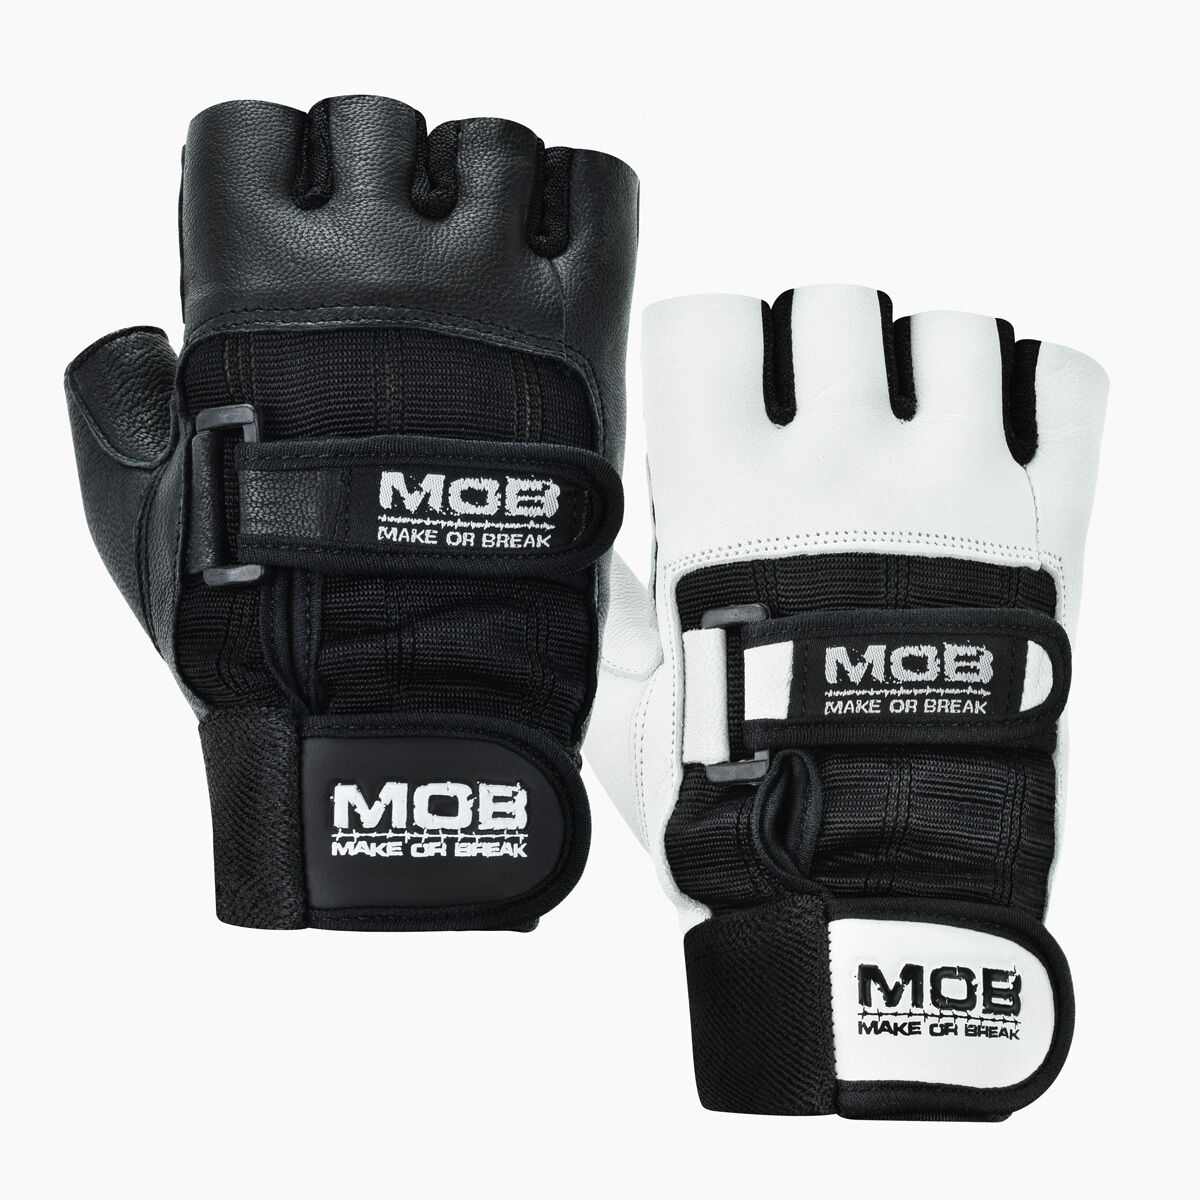 Weight Lifting Gloves Leather Fitness Gym Training Workout: Weight Lifting Gym Padded Leather Training Workout Fitness